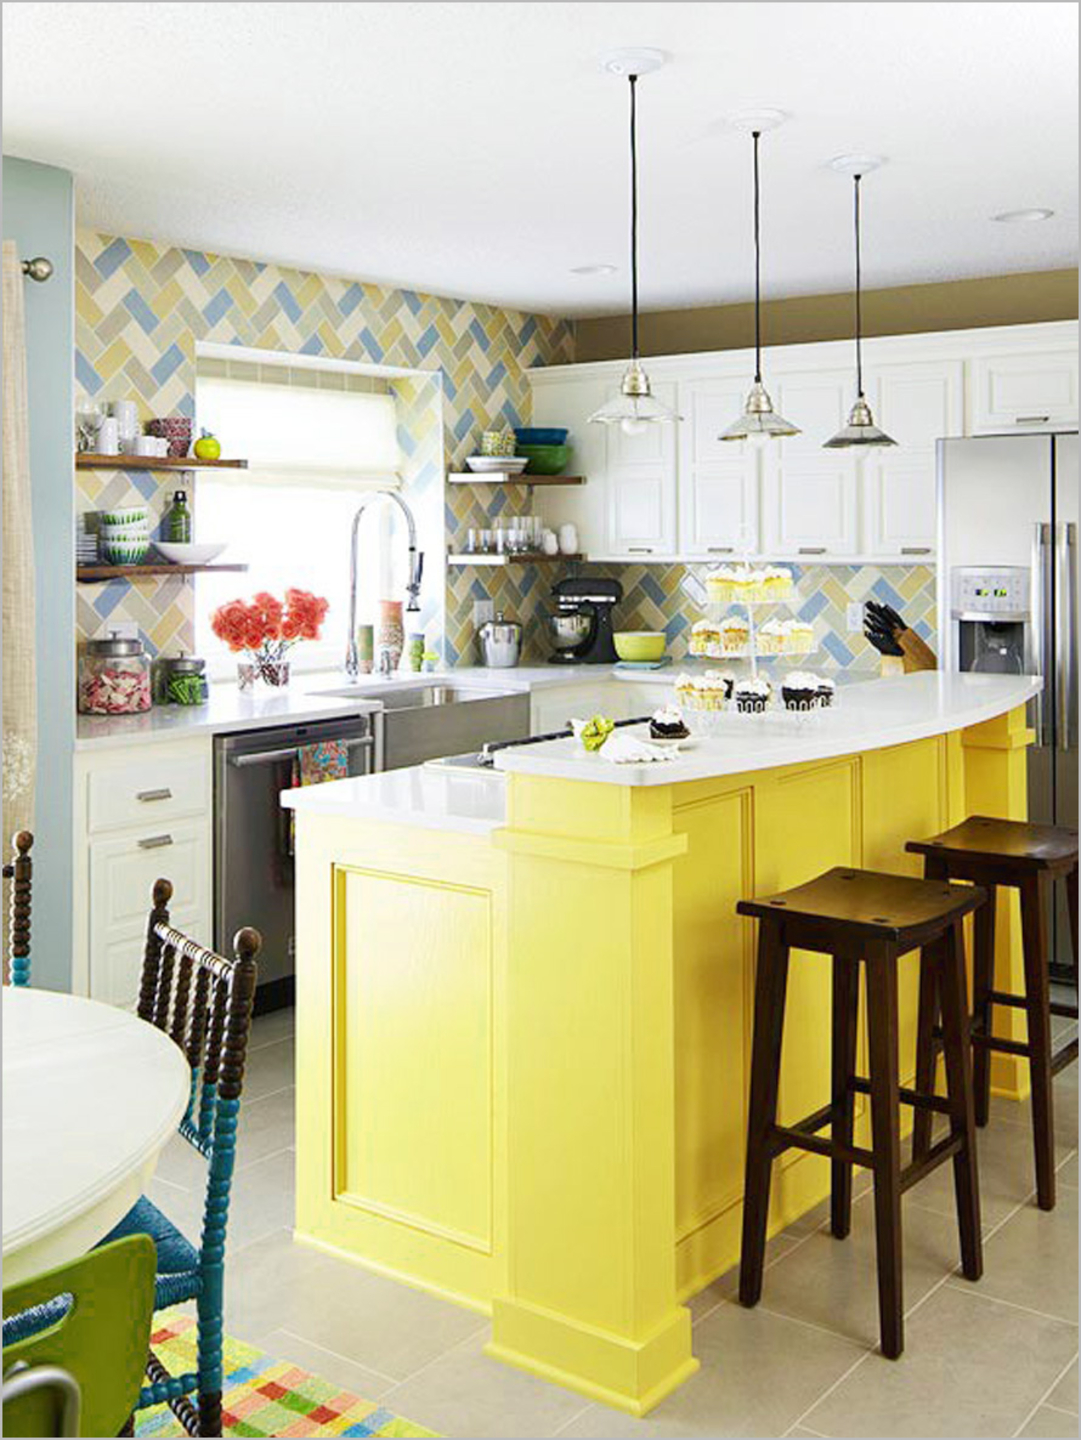 Canary In A Cage Yellow Kitchen Island Idea